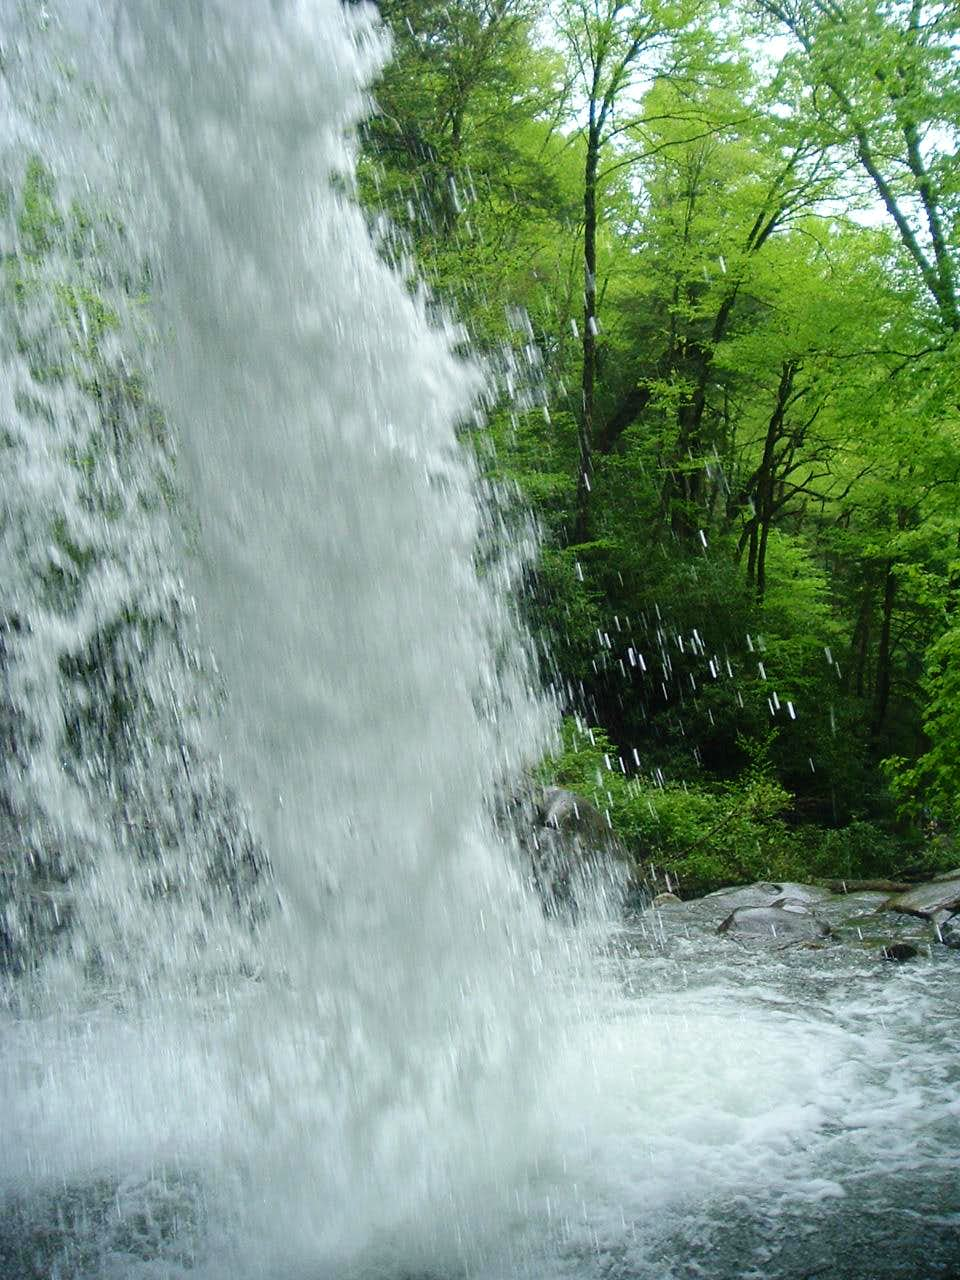 Grotto Falls from behind